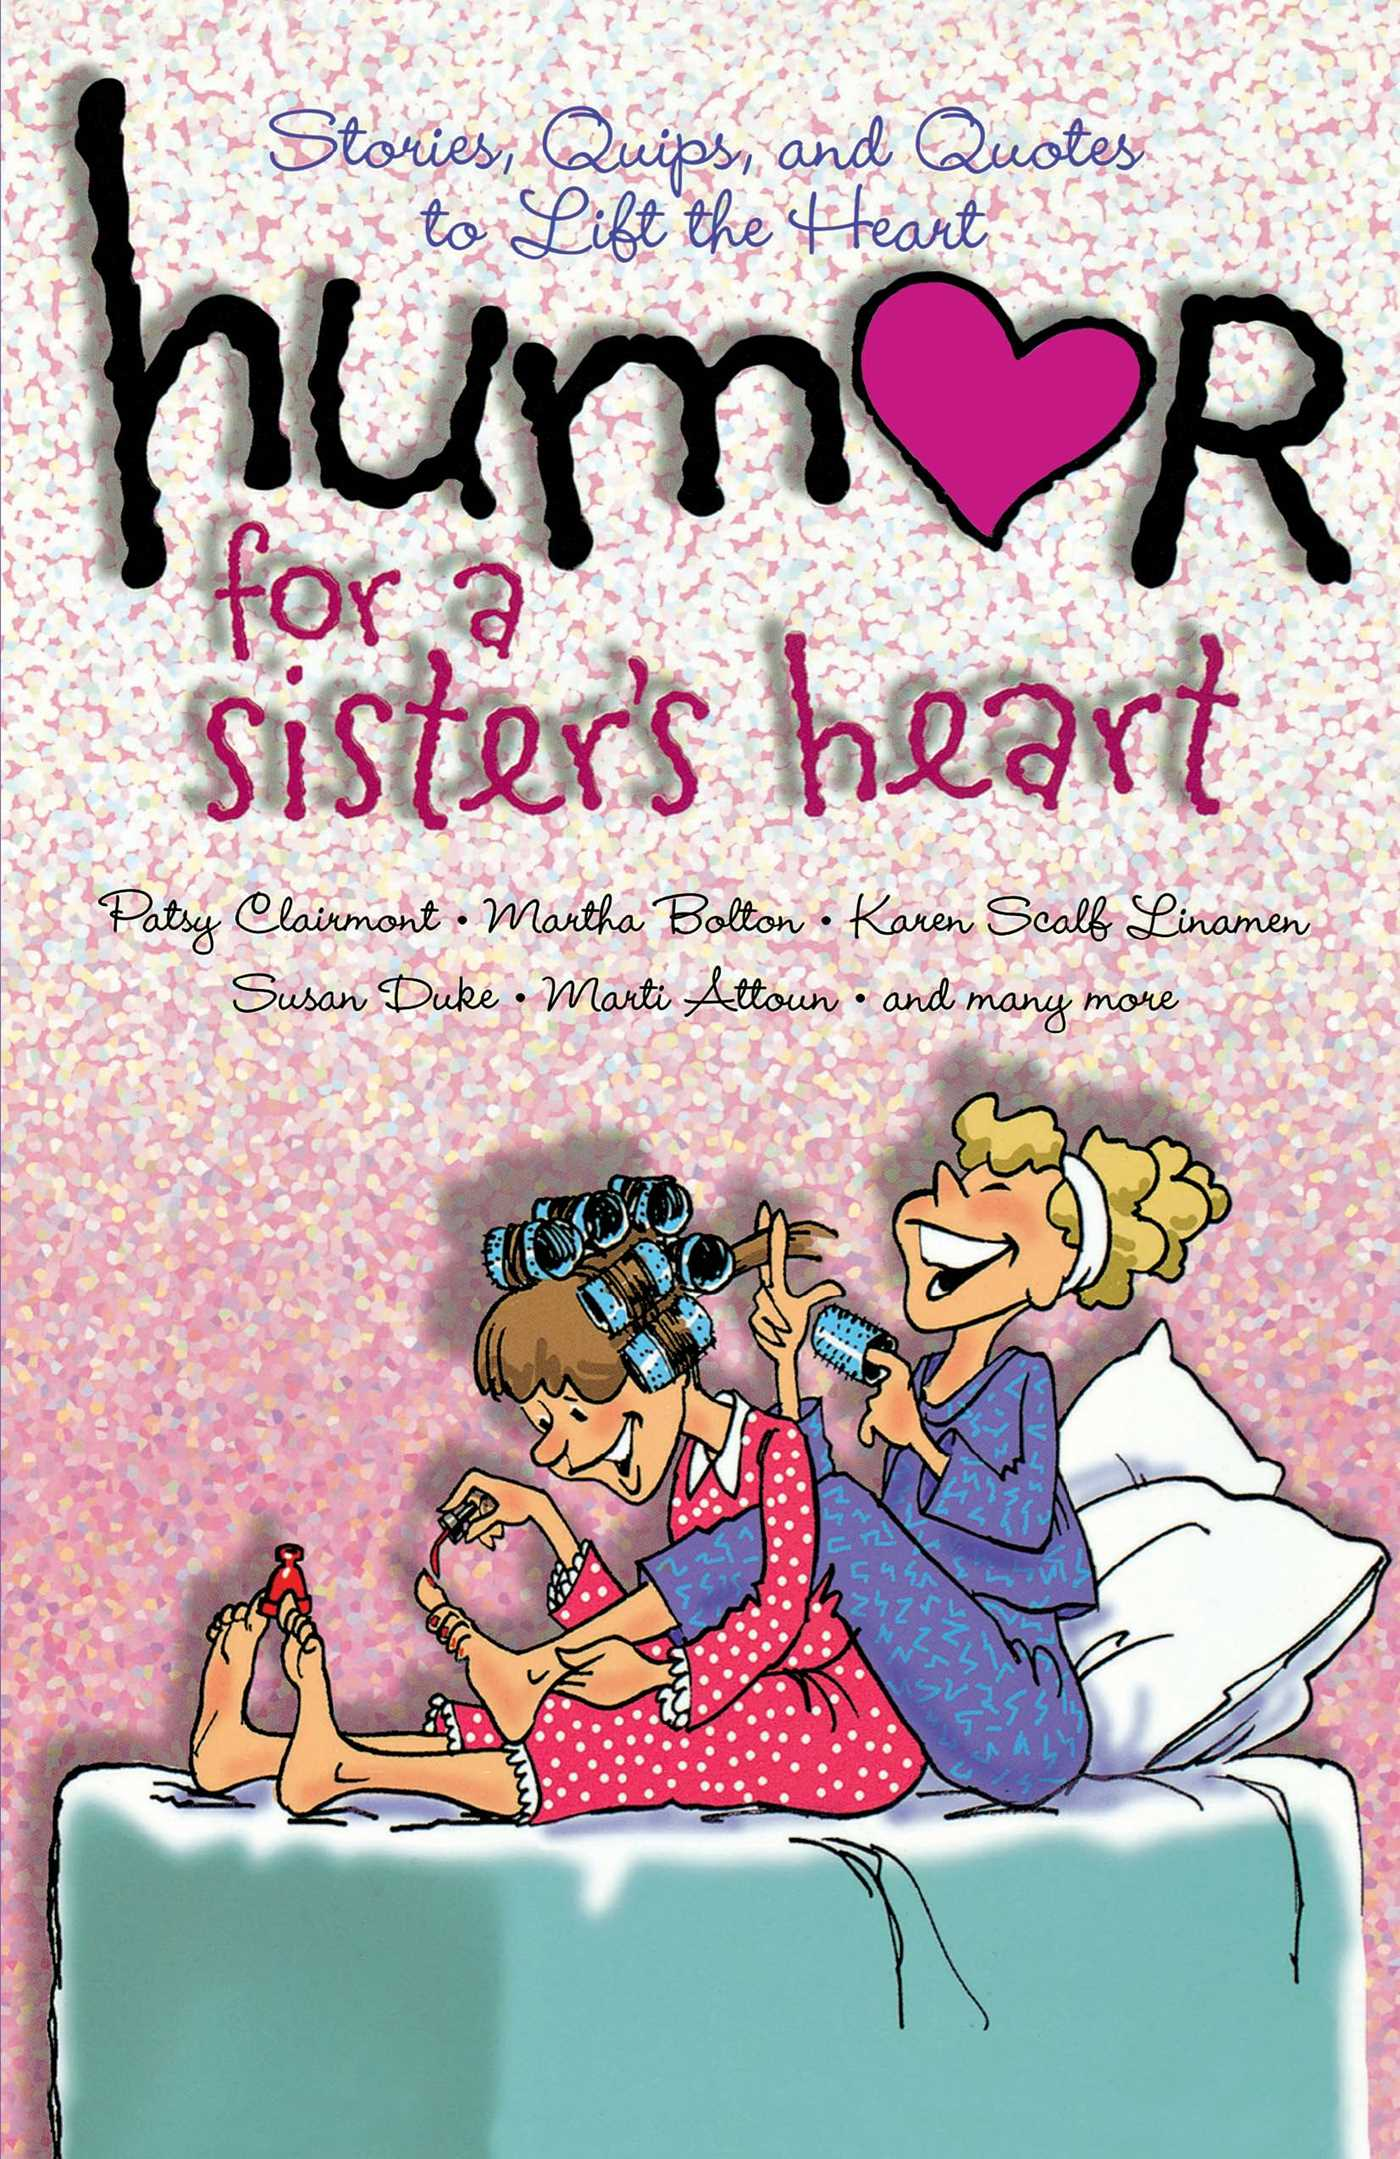 Humor for a sisters heart 9781416541769 hr